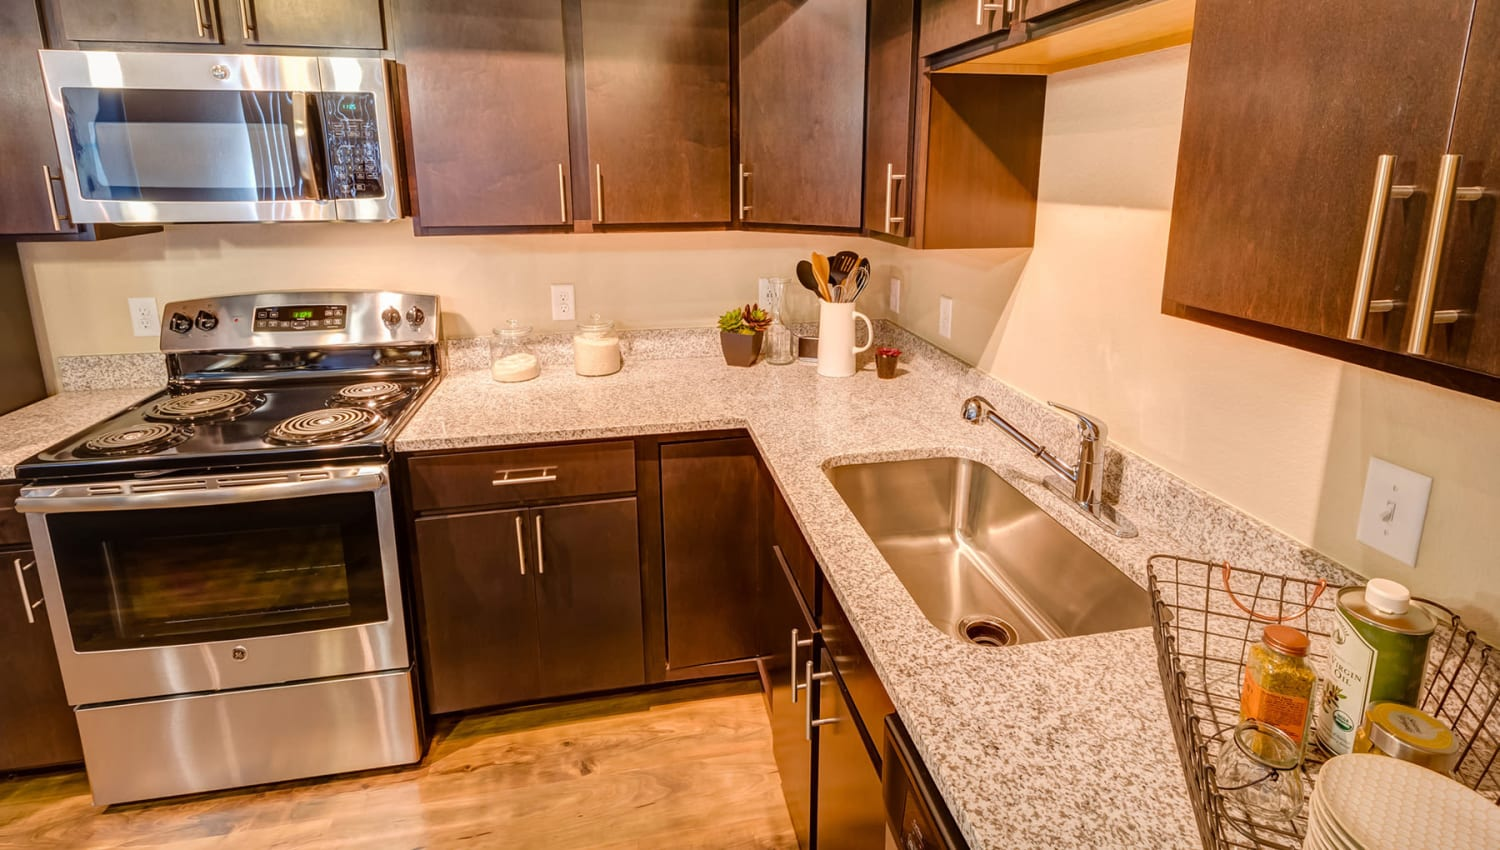 Stainless-steel appliances in a model apartment's kitchen at Granite 550 in Casper, Wyoming